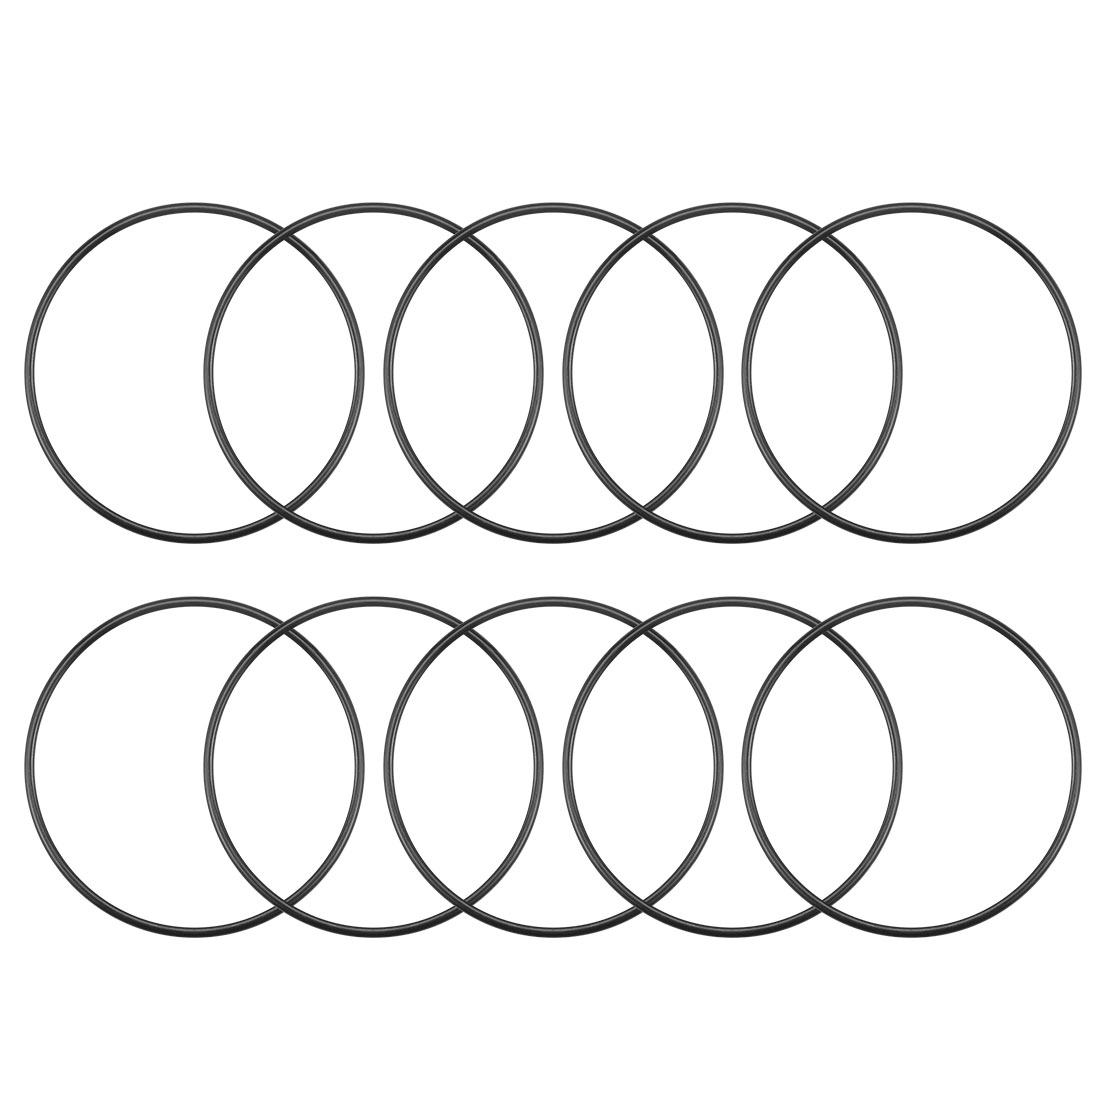 O-Rings Nitrile Rubber 48.7mm x 52.3mm x 1.8mm Round Seal Gasket 10Pcs